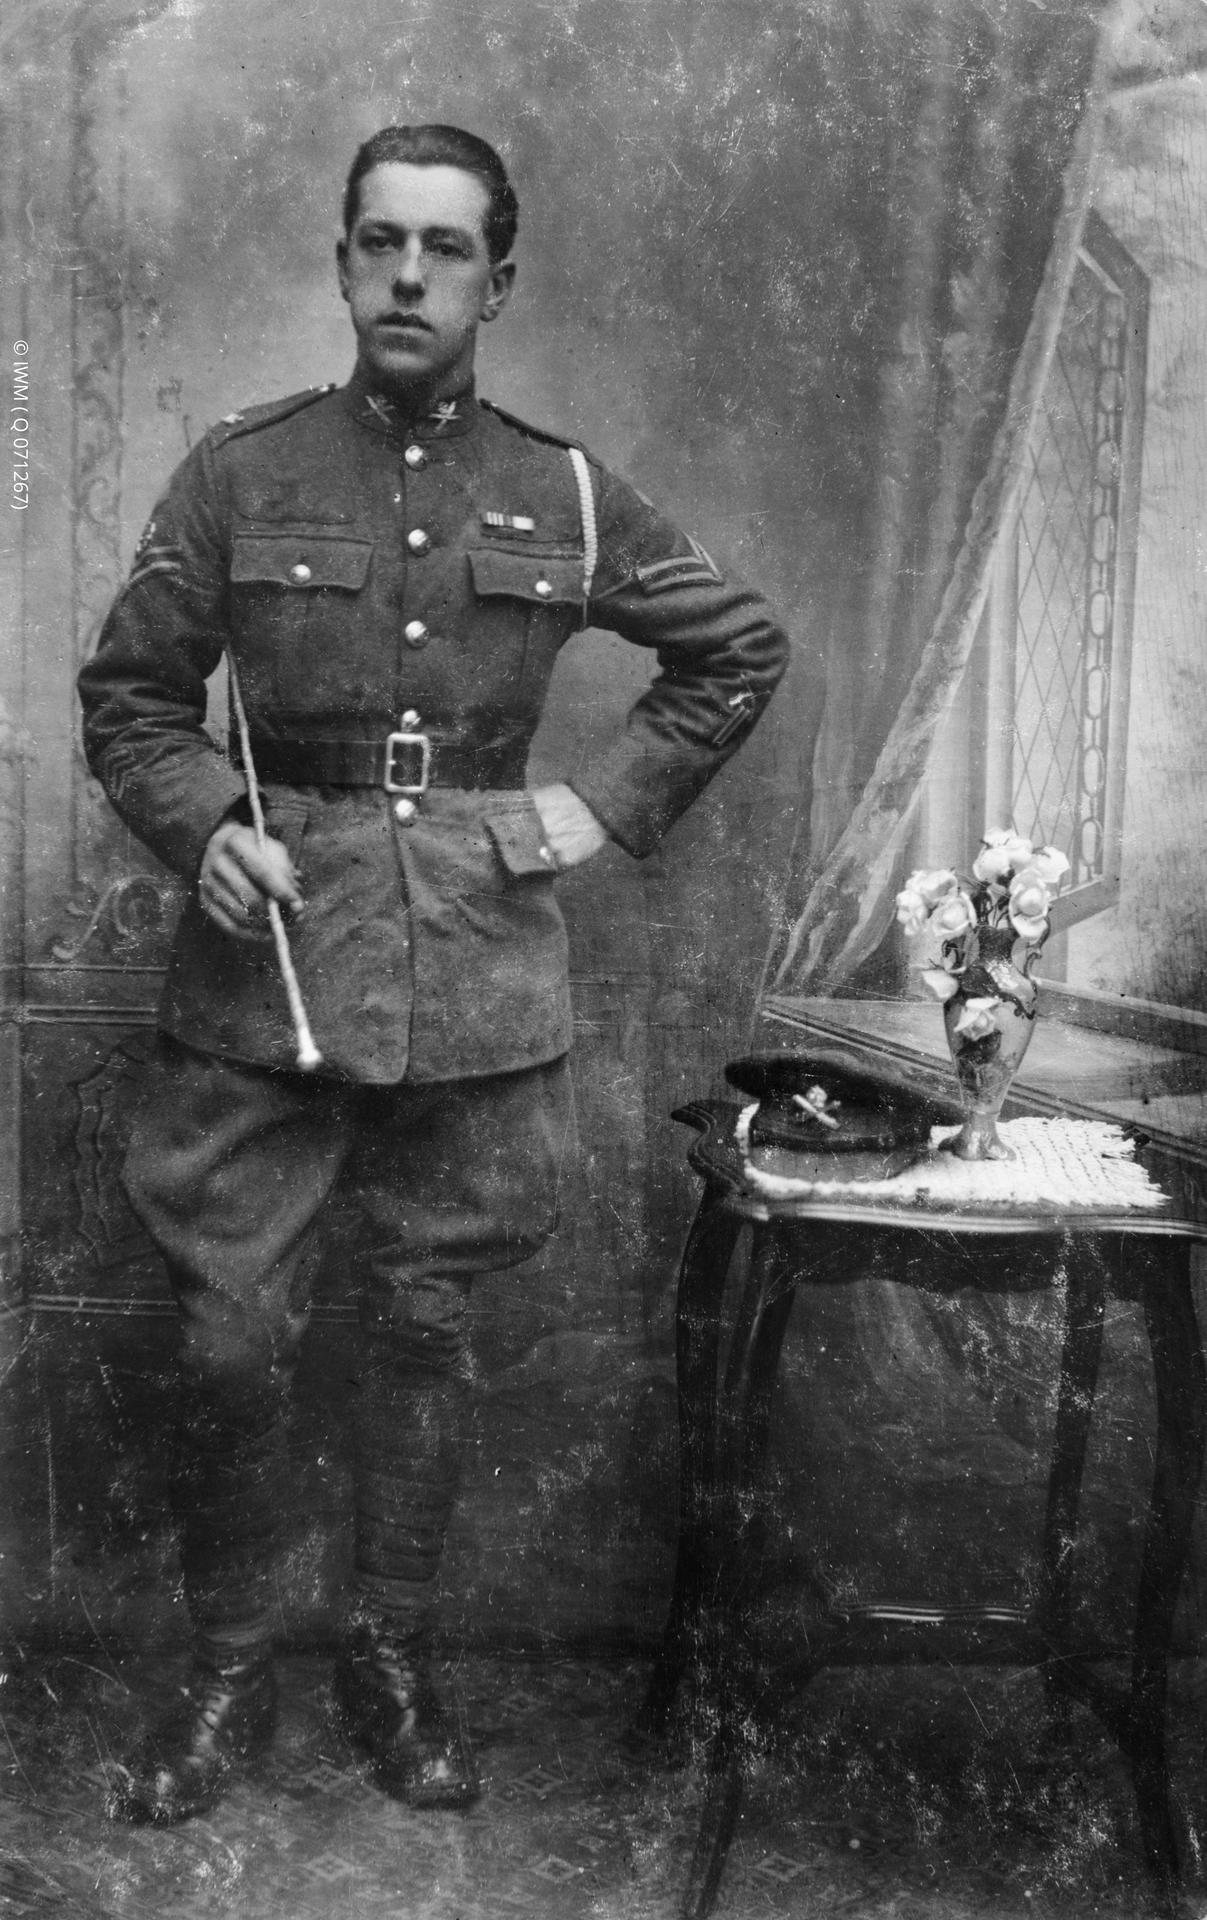 Copy negative created from a photograph. Image shows a formal, full-length studio portrait of Corporal George A Coppard MM standing. The photograph was presumable taken after the awarding of the Military Medal for services in the Battle of Cambrai.  Portrait photograph (formal). Coppard is seated wearing the uniform of a corporal in the Machine Gun Corps, with the ribbon to the MM on his tunic. Standing behind and to the side is another soldier, a sergeant.